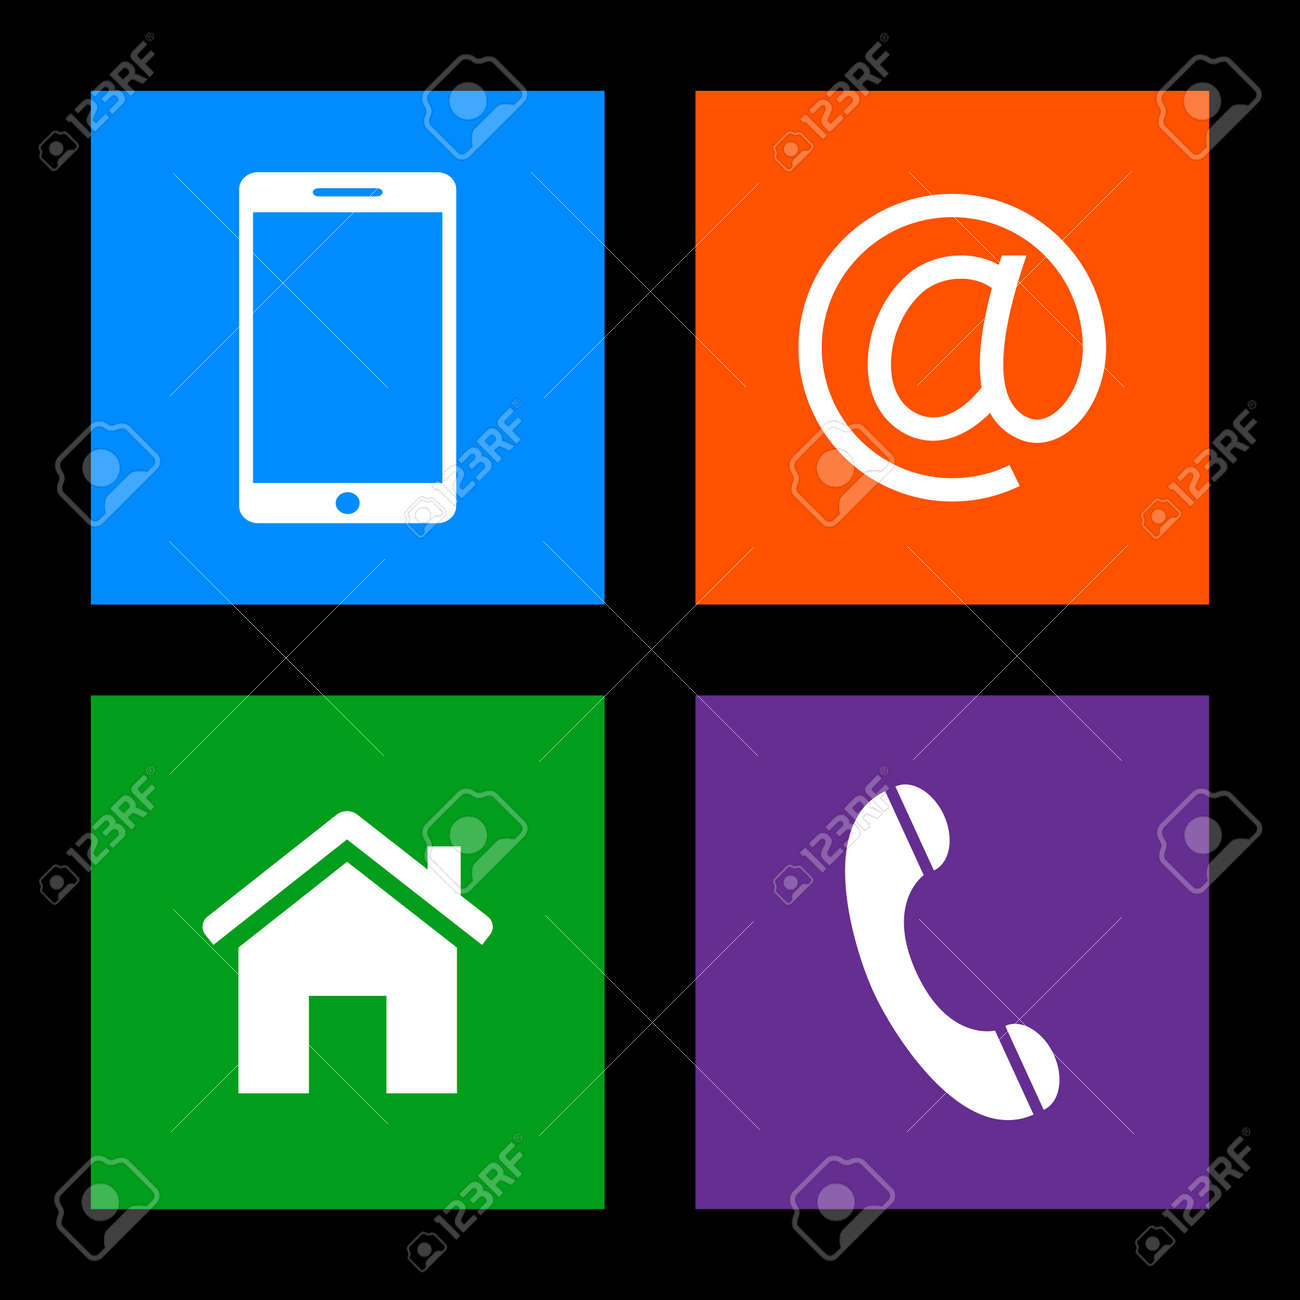 Contact Buttons - Mobile, Email, Home, Phone Icons Royalty Free ...